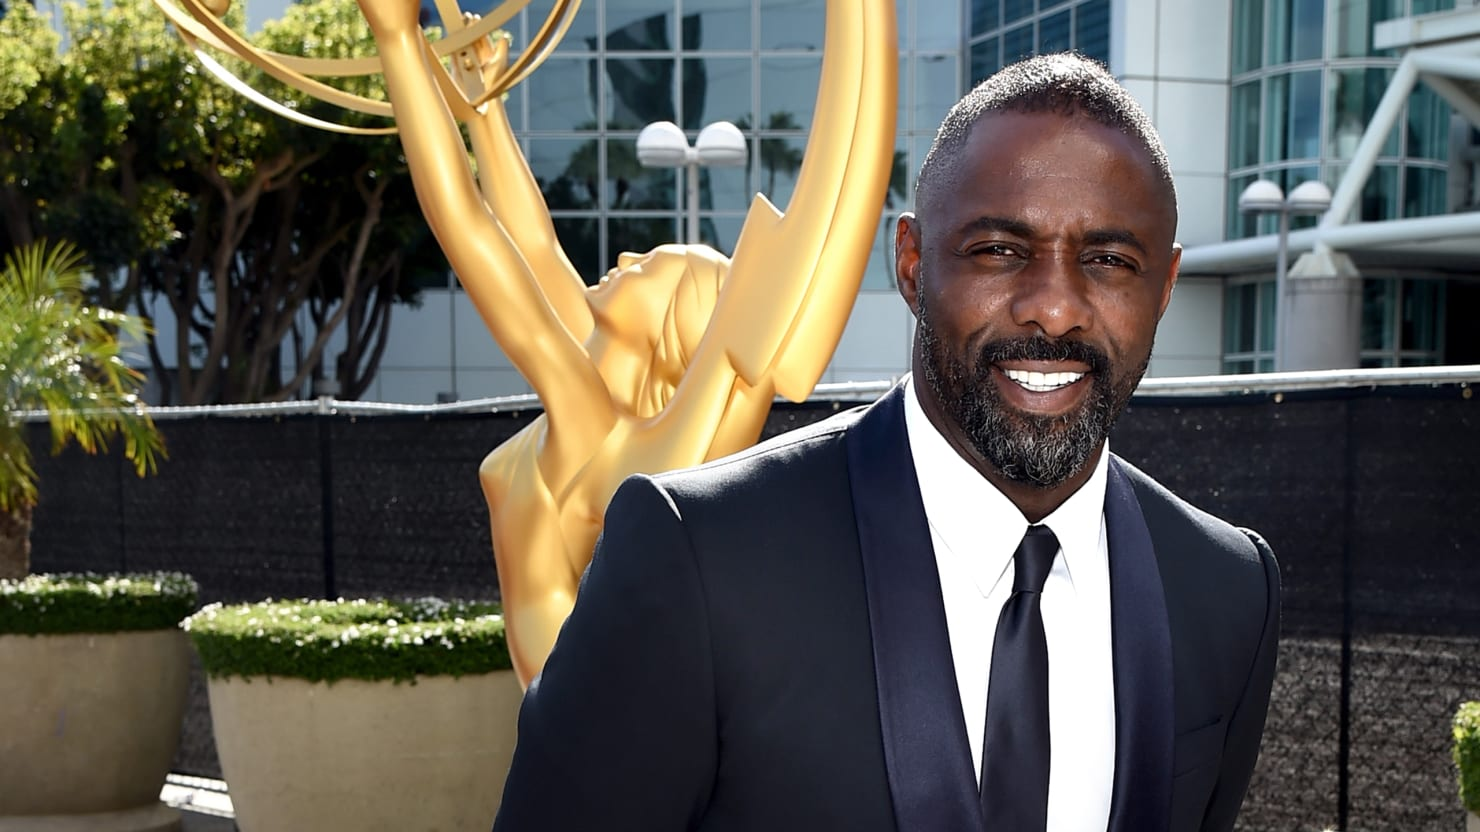 Exclusive: Sony Emails Reveal Studio Head Wants Idris Elba For the Next James Bond